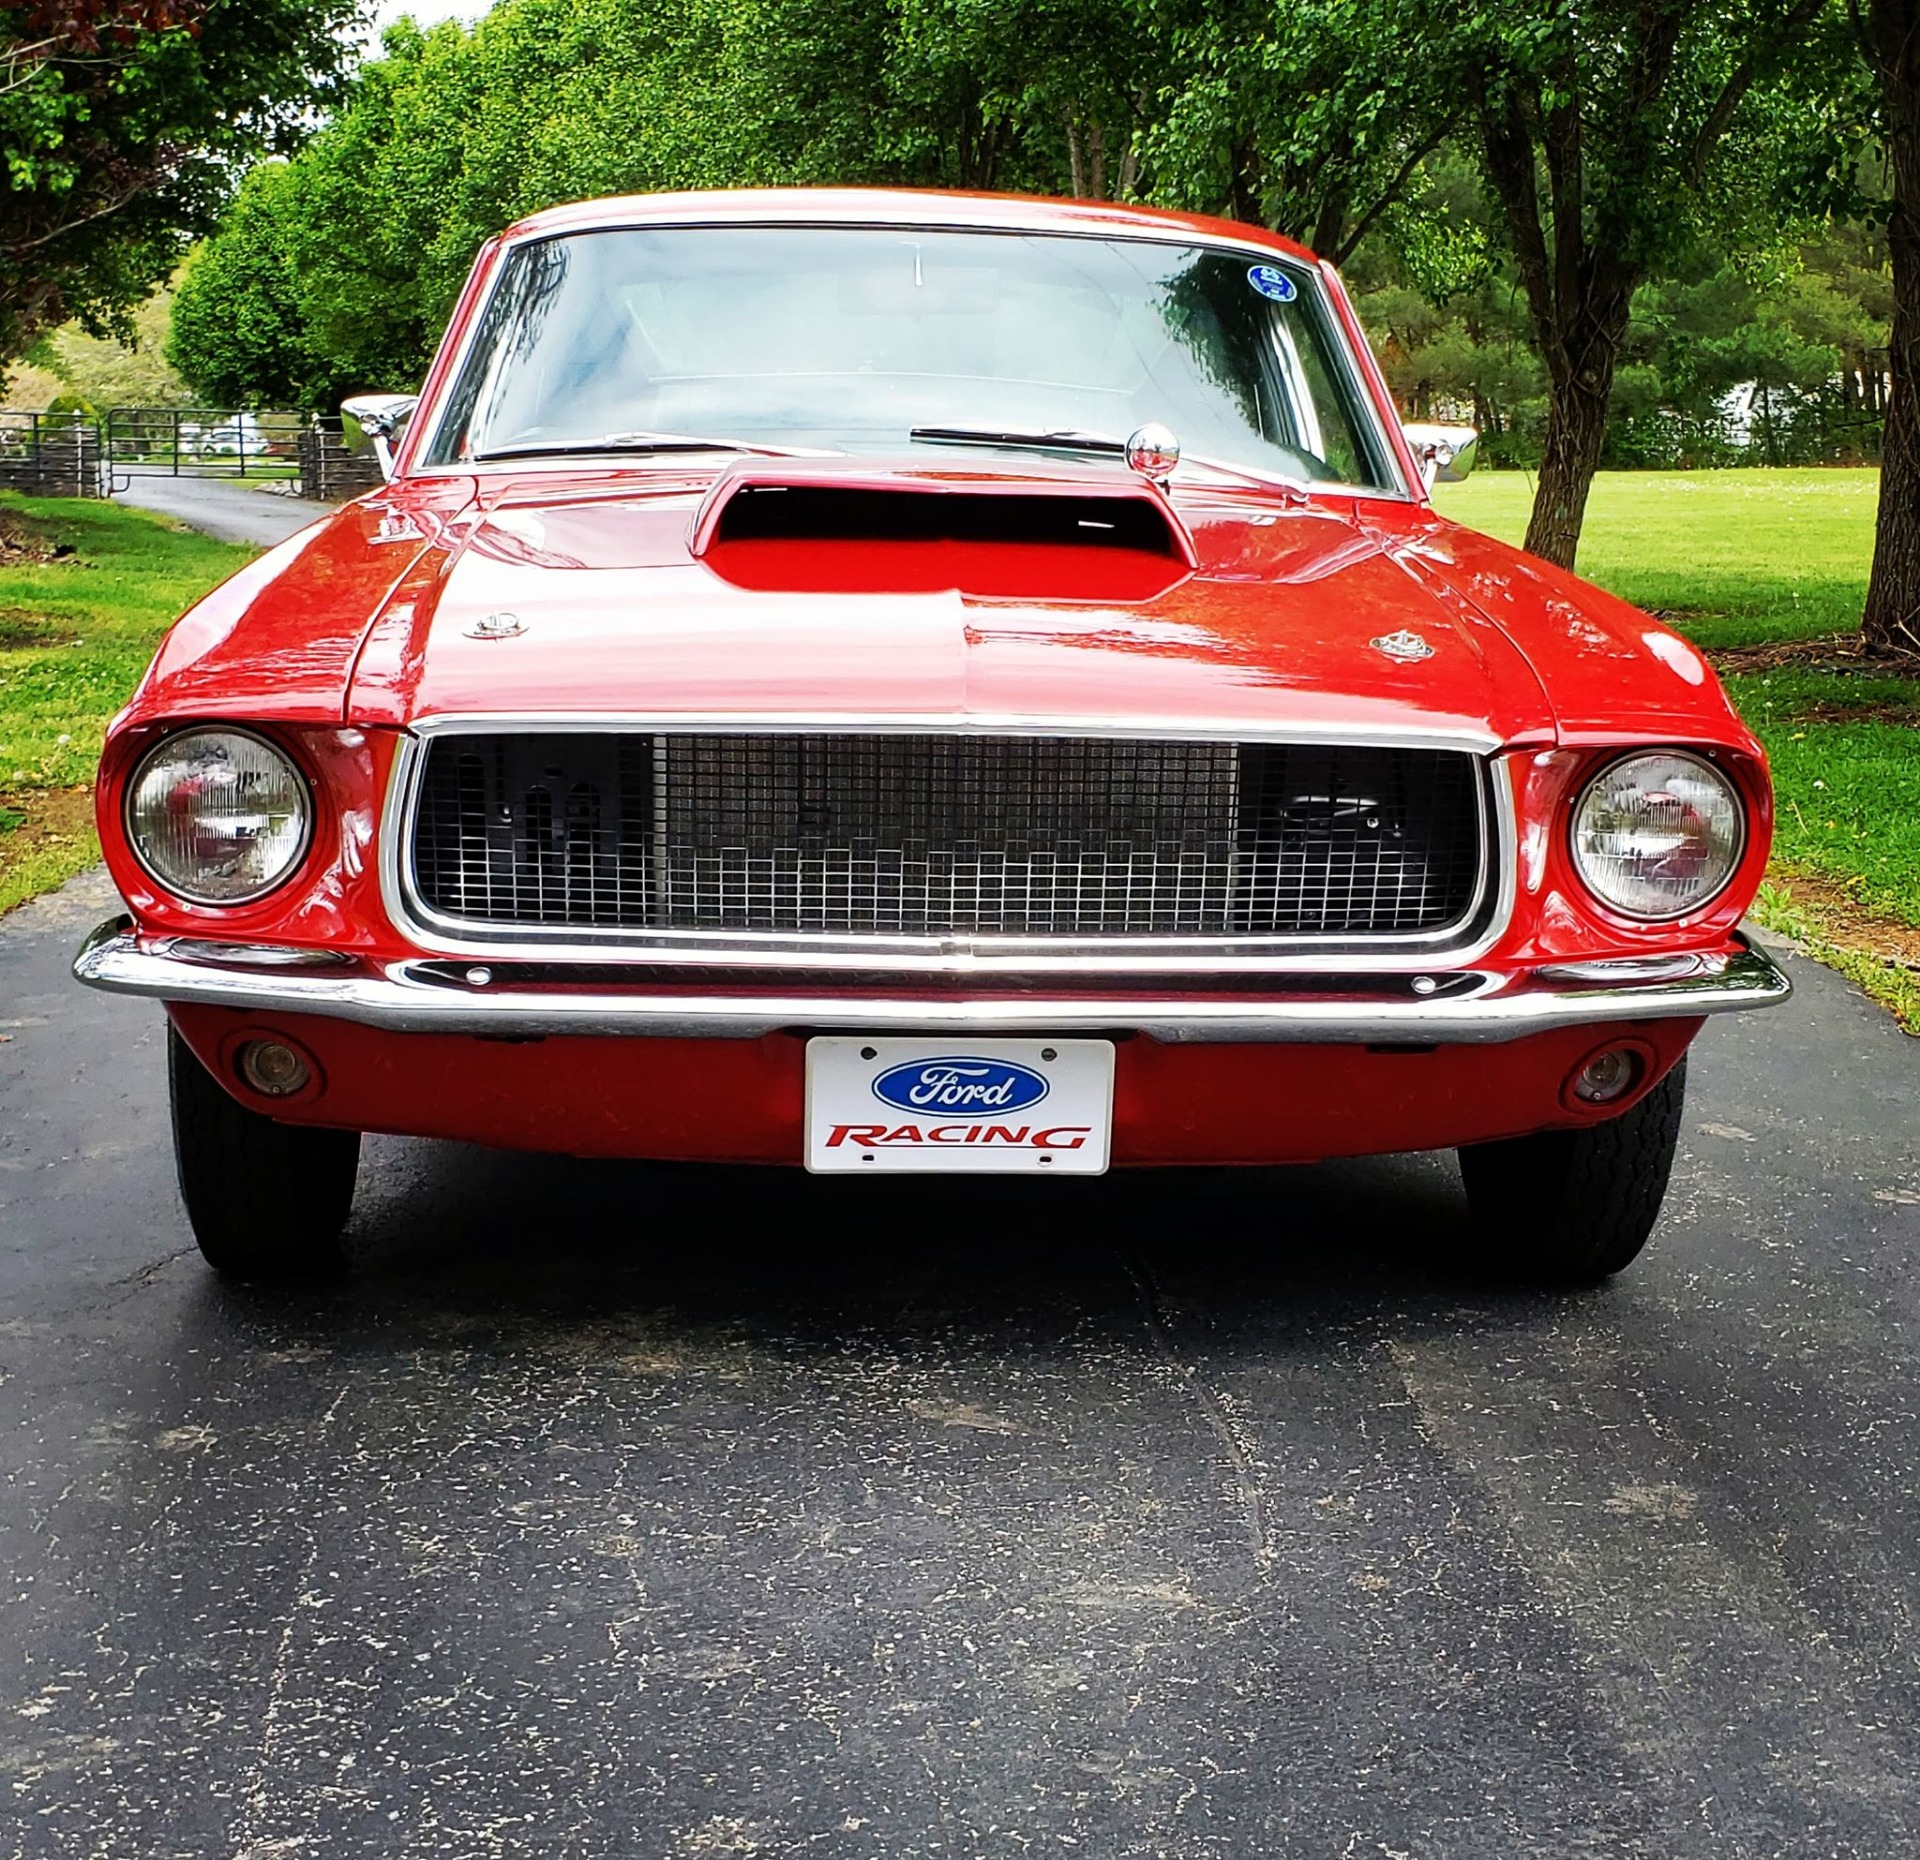 Ford Mustang 1967 For Sale: 1967 Ford Mustang -FASTBACK-4 SPEED-RESTORED-BUILT MUSCLE